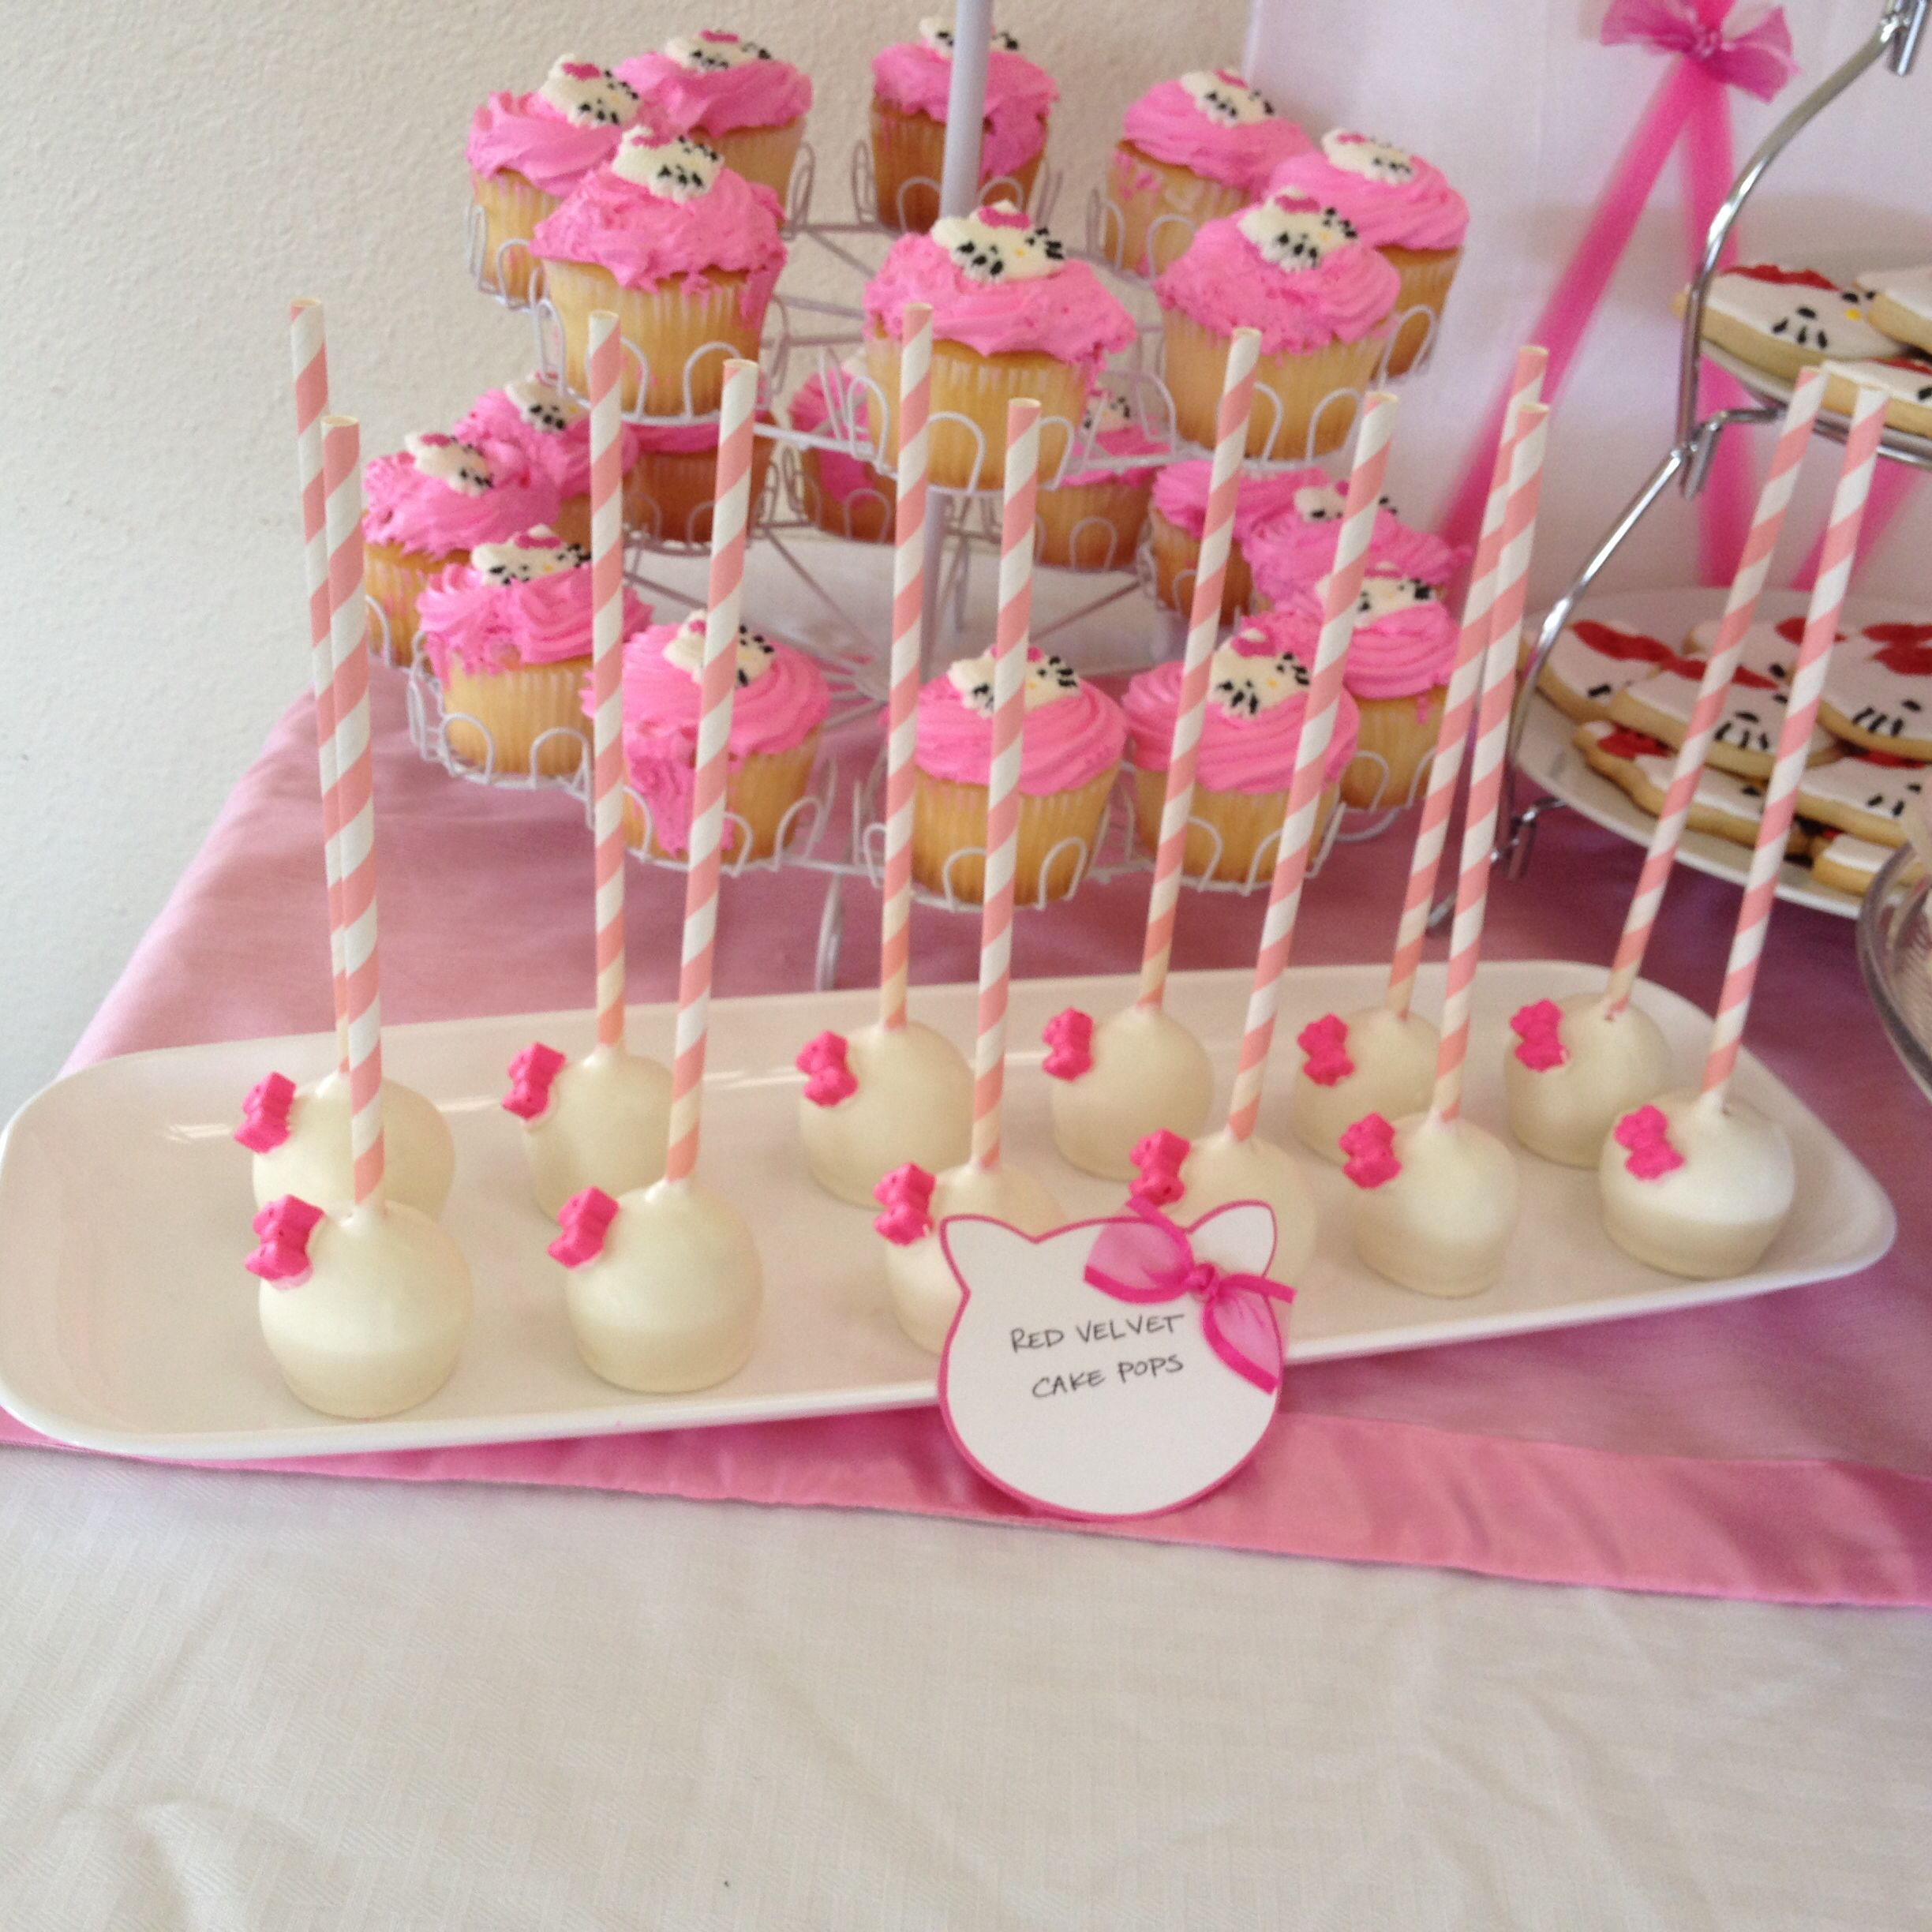 Cake pops for hello kitty baby shower dessert table